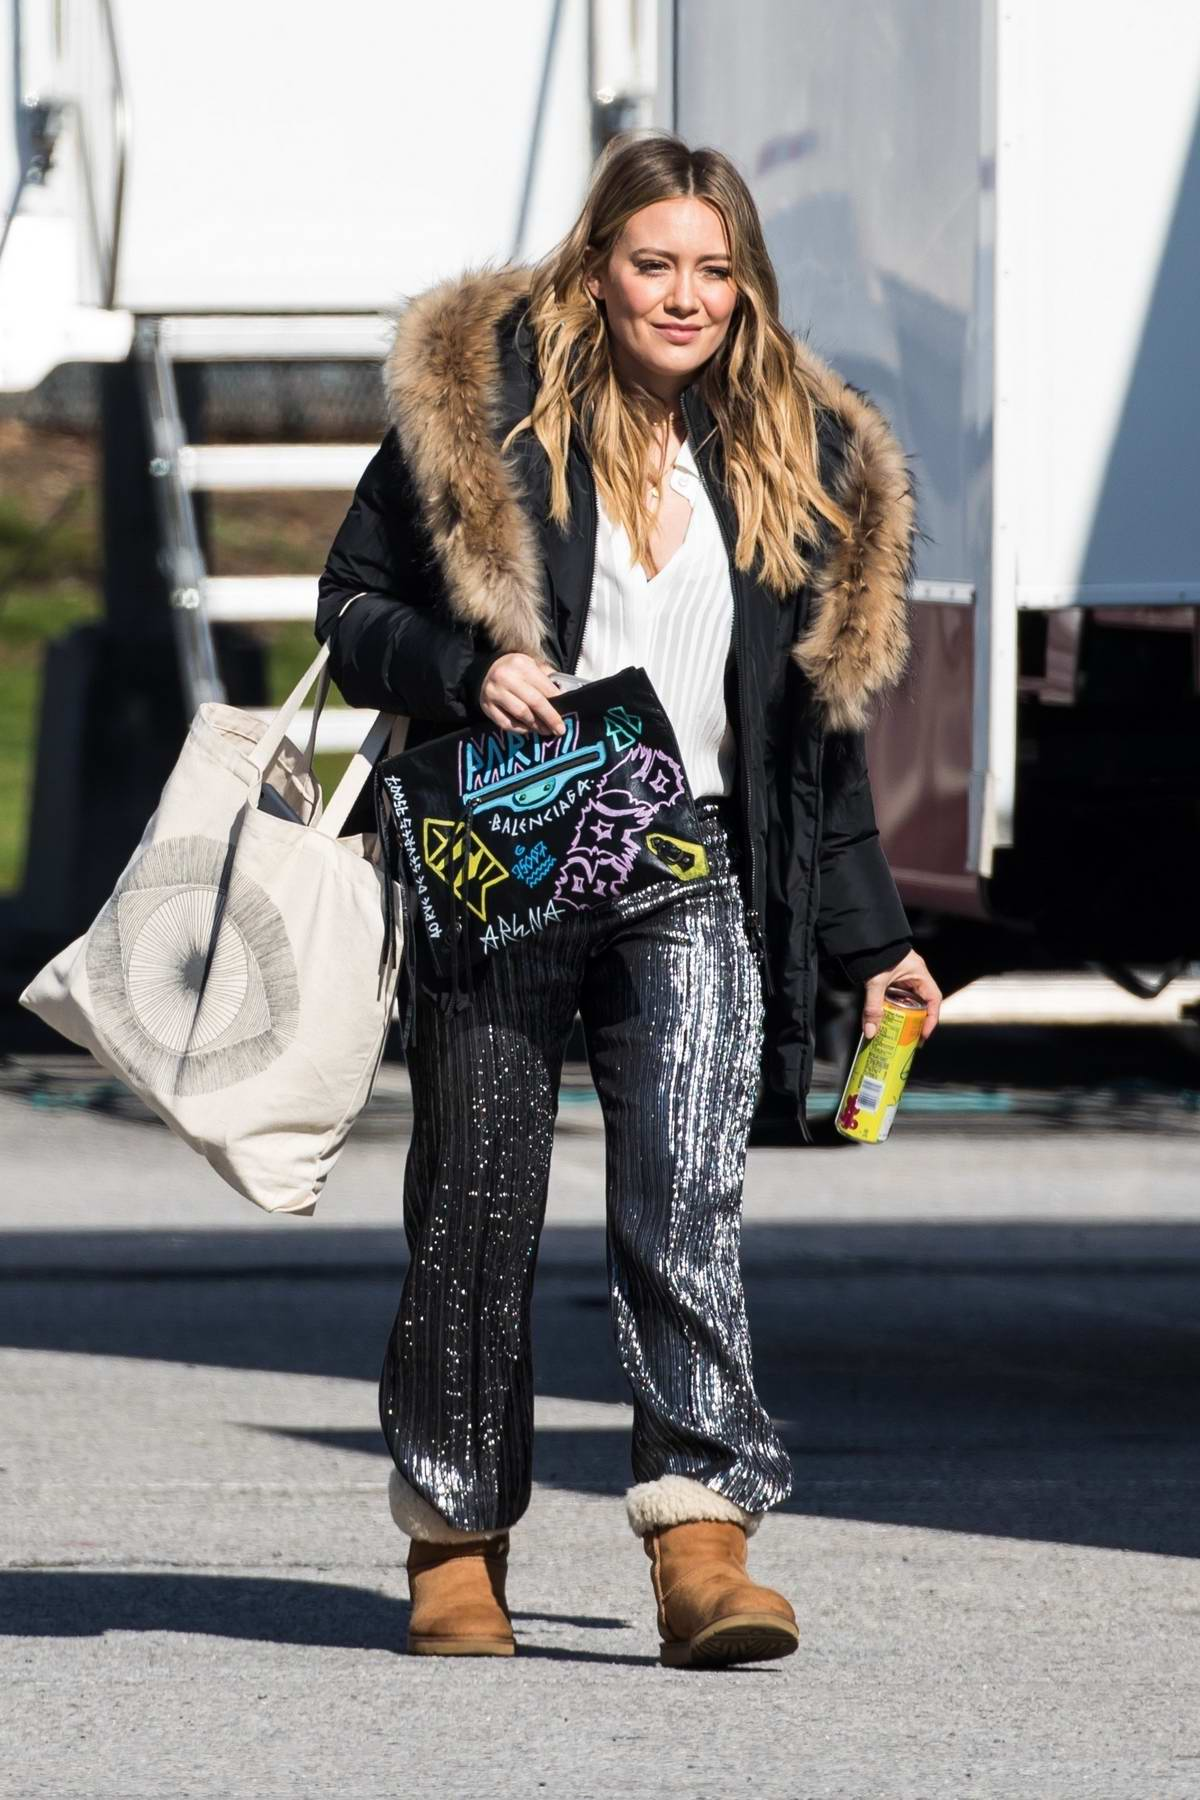 Hilary Duff spotted wearing a fur trimmed jacket with a pair of shiny pants and UGG boots on the set of 'Younger' in New York City